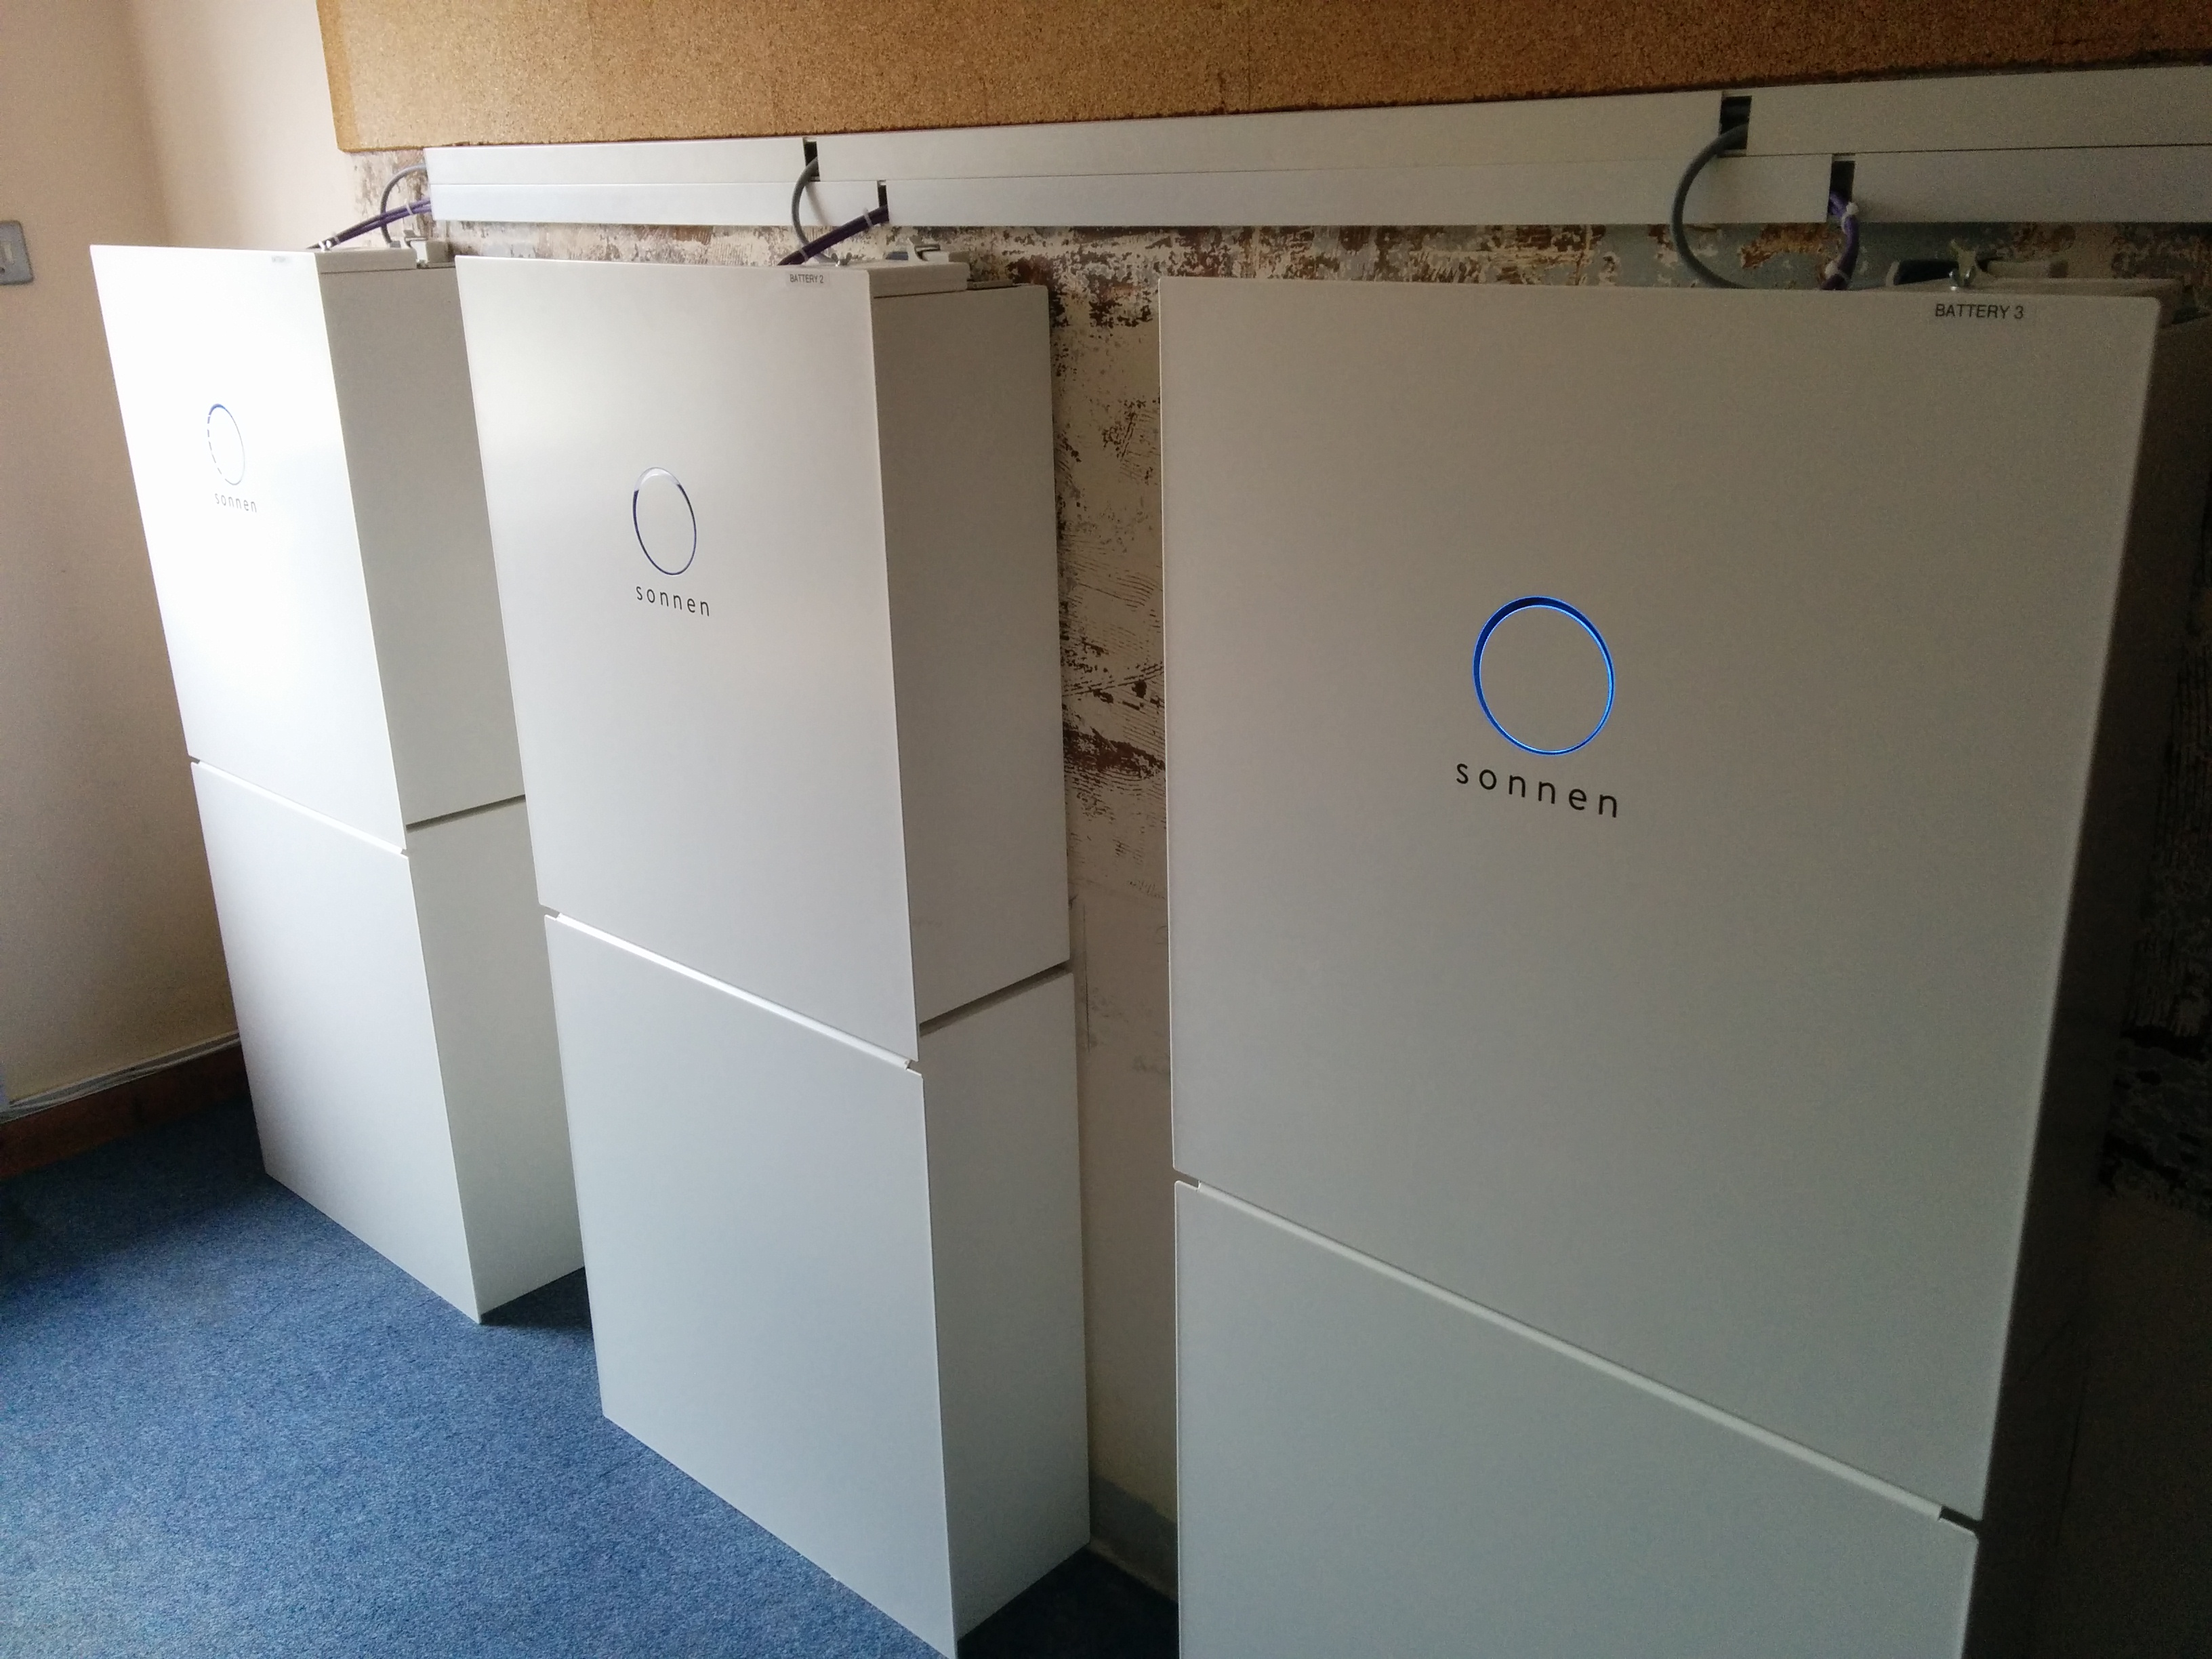 Renewable co-op REPOWERBalcombe installs battery storage system at Sussex school